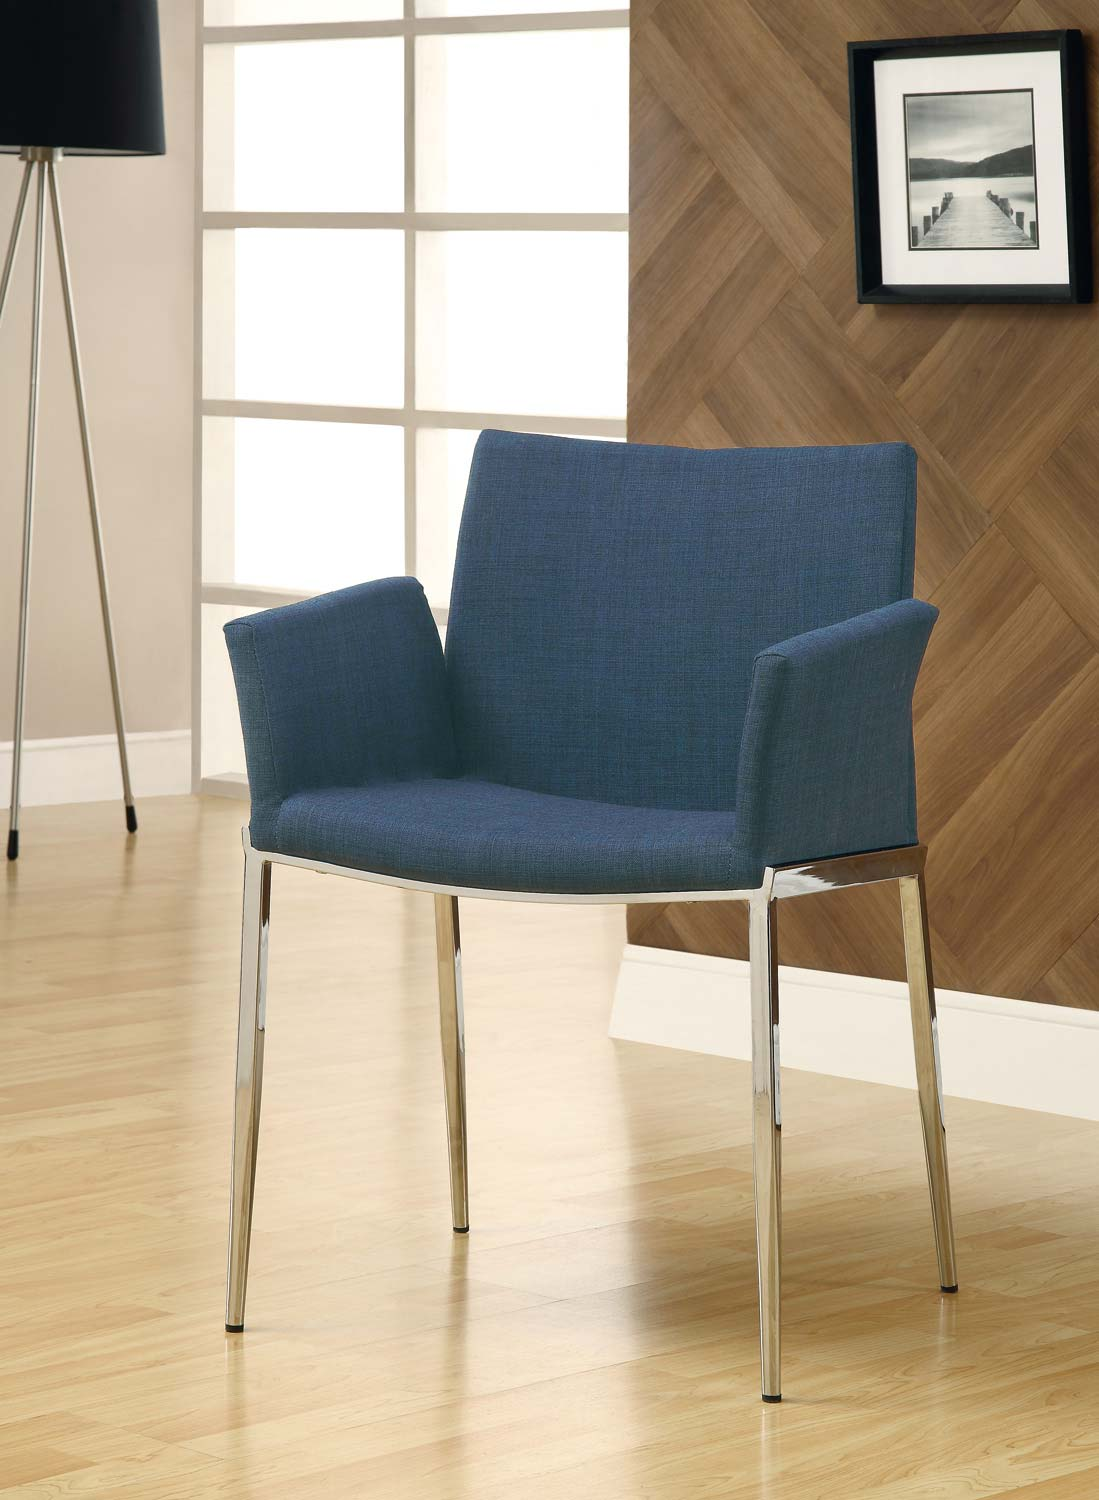 Coaster Mix & Match Dining Chair - Navy